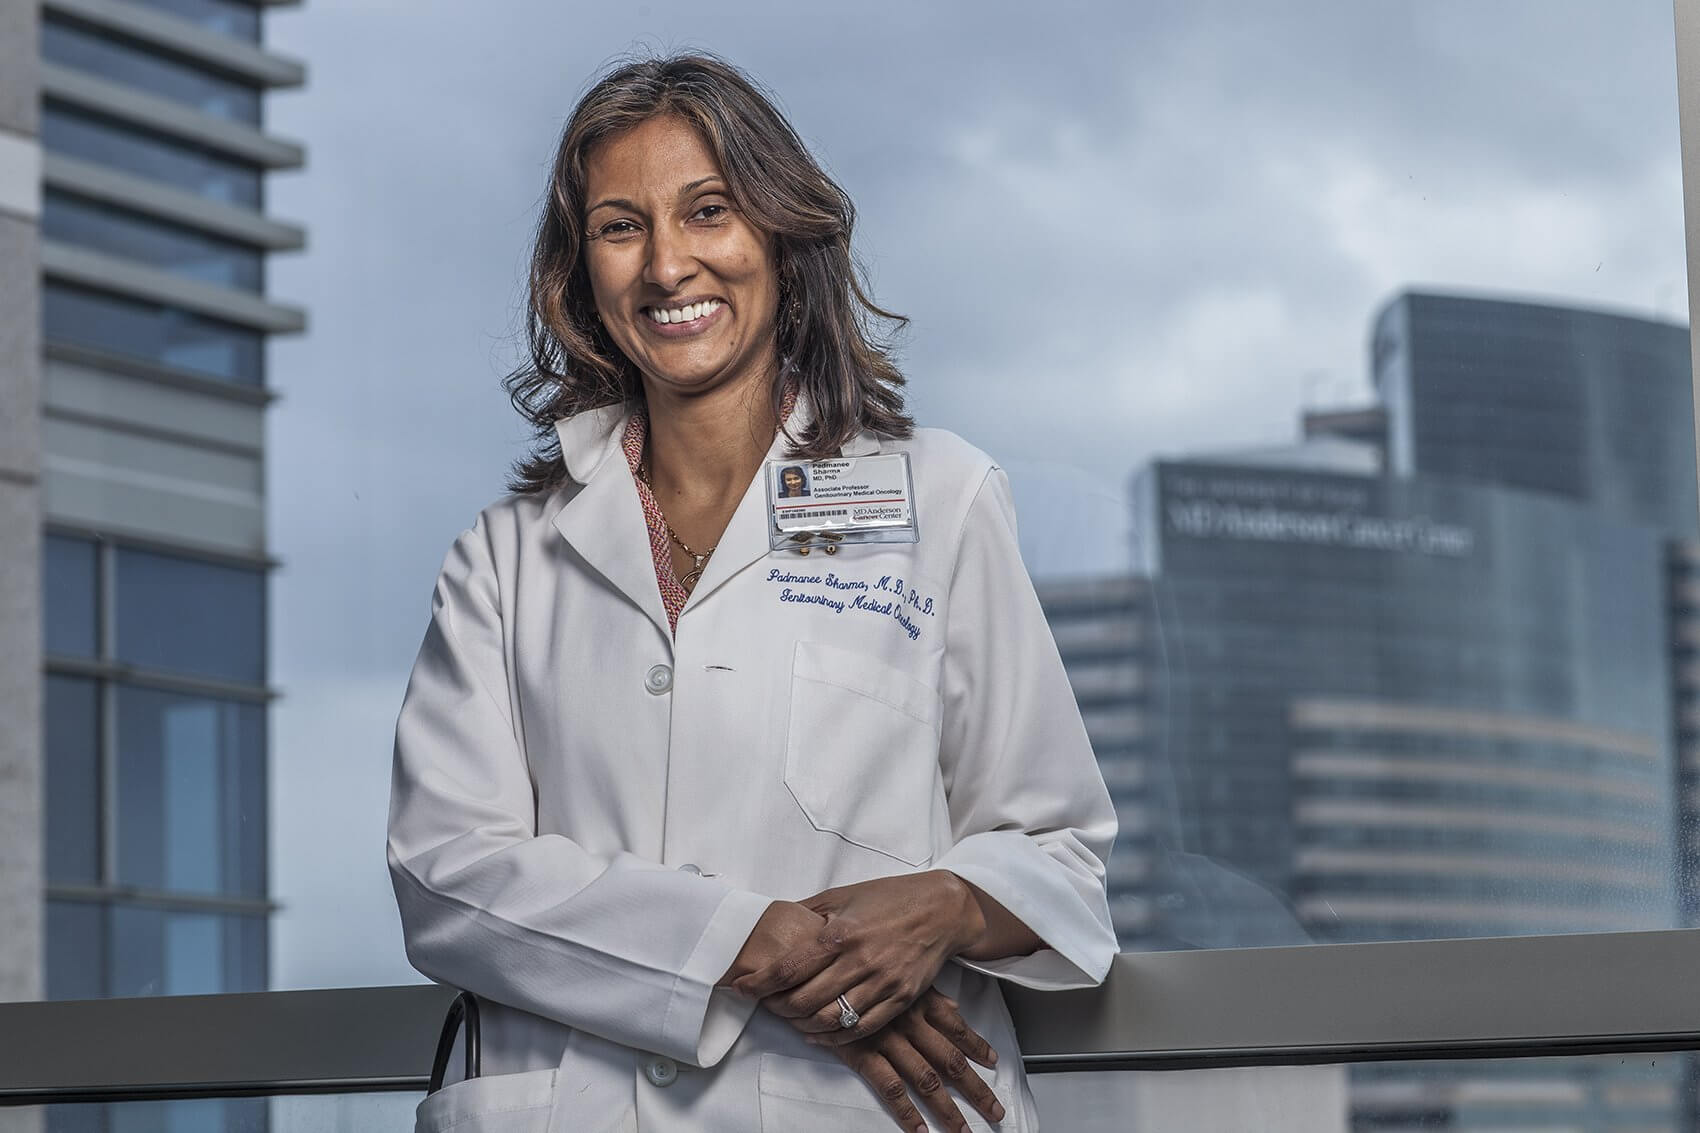 Padmanee Sharma, M.D., Ph.D., Professor of Genitourinary Medical Oncology and Immunology at The University of Texas MD Anderson Cancer Center